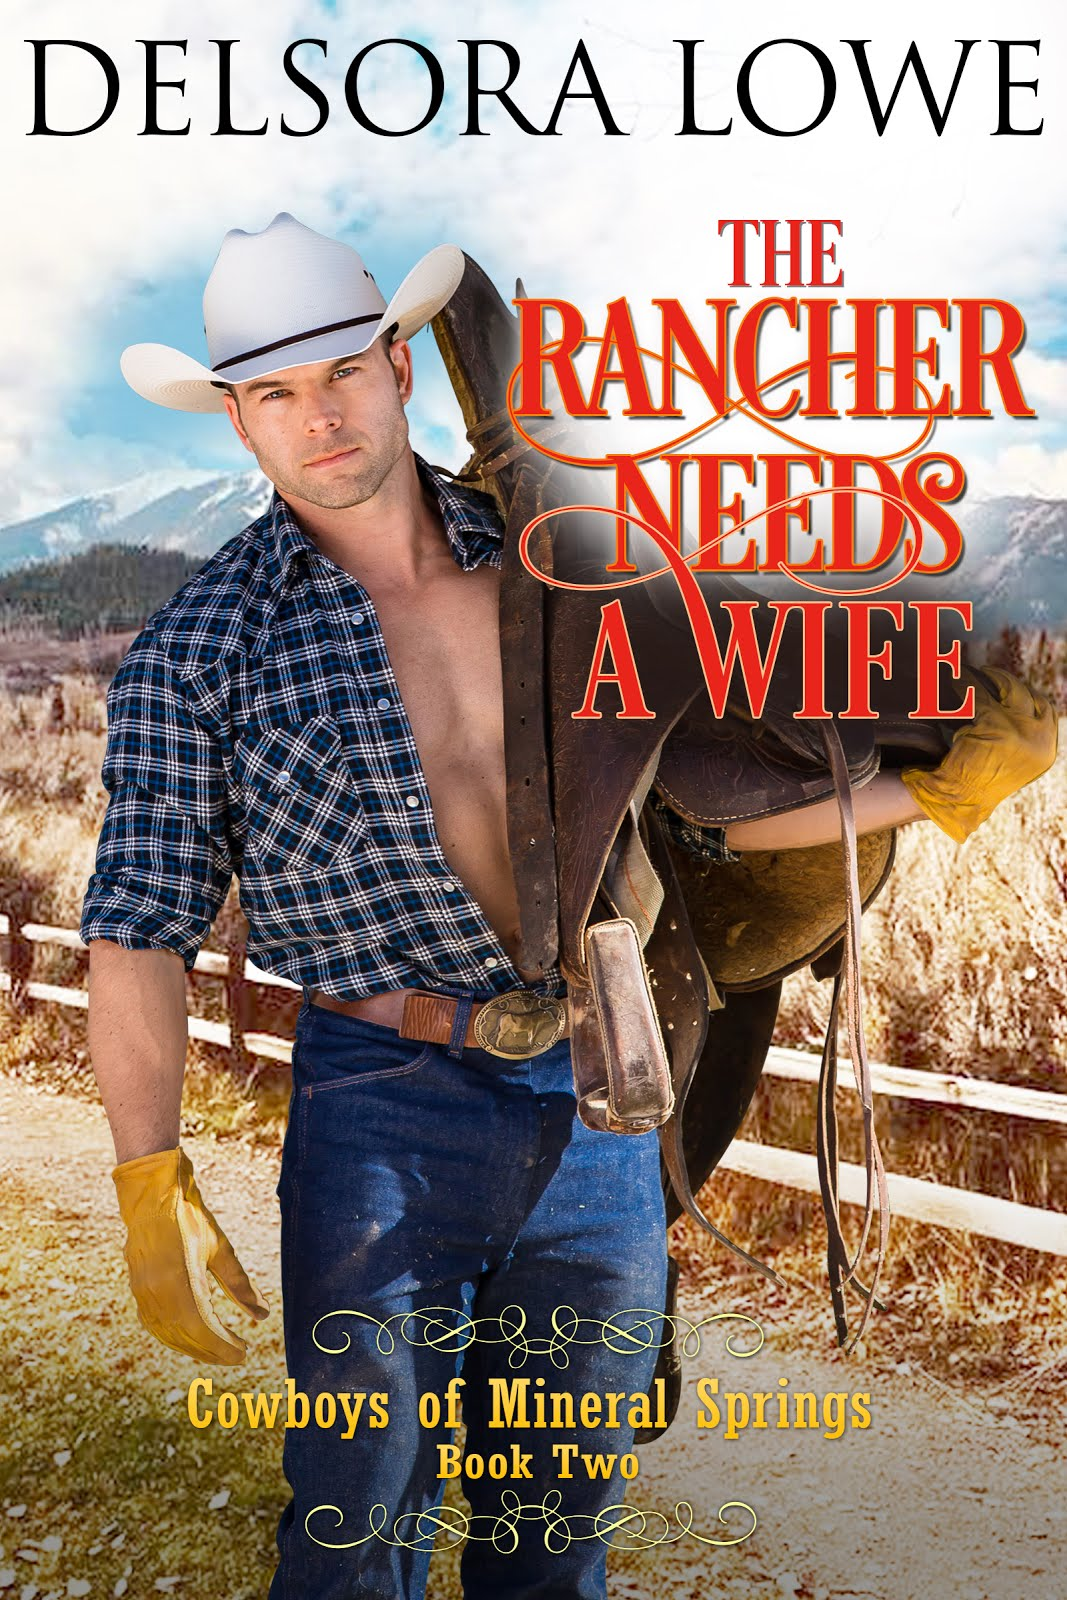 Book Two, Cowboys of Mineral Springs